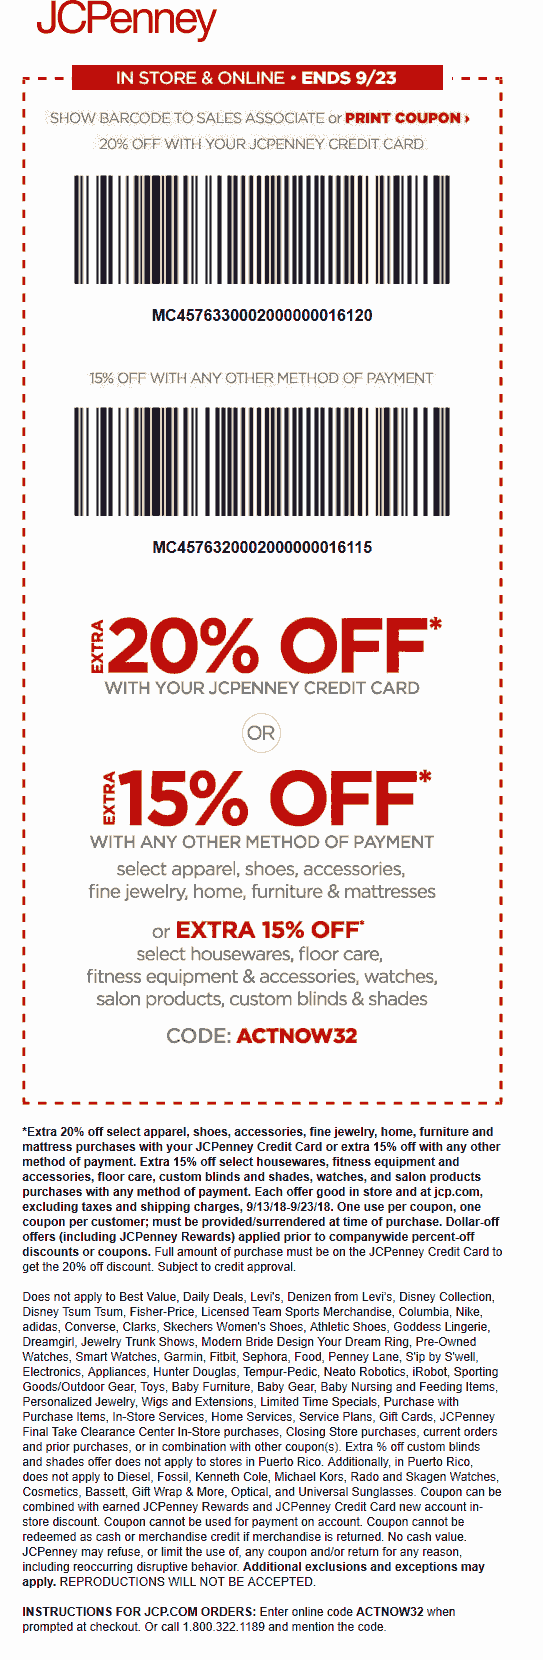 JCPenney Coupon May 2019 15% off at JCPenney, or online via promo code ACTNOW32